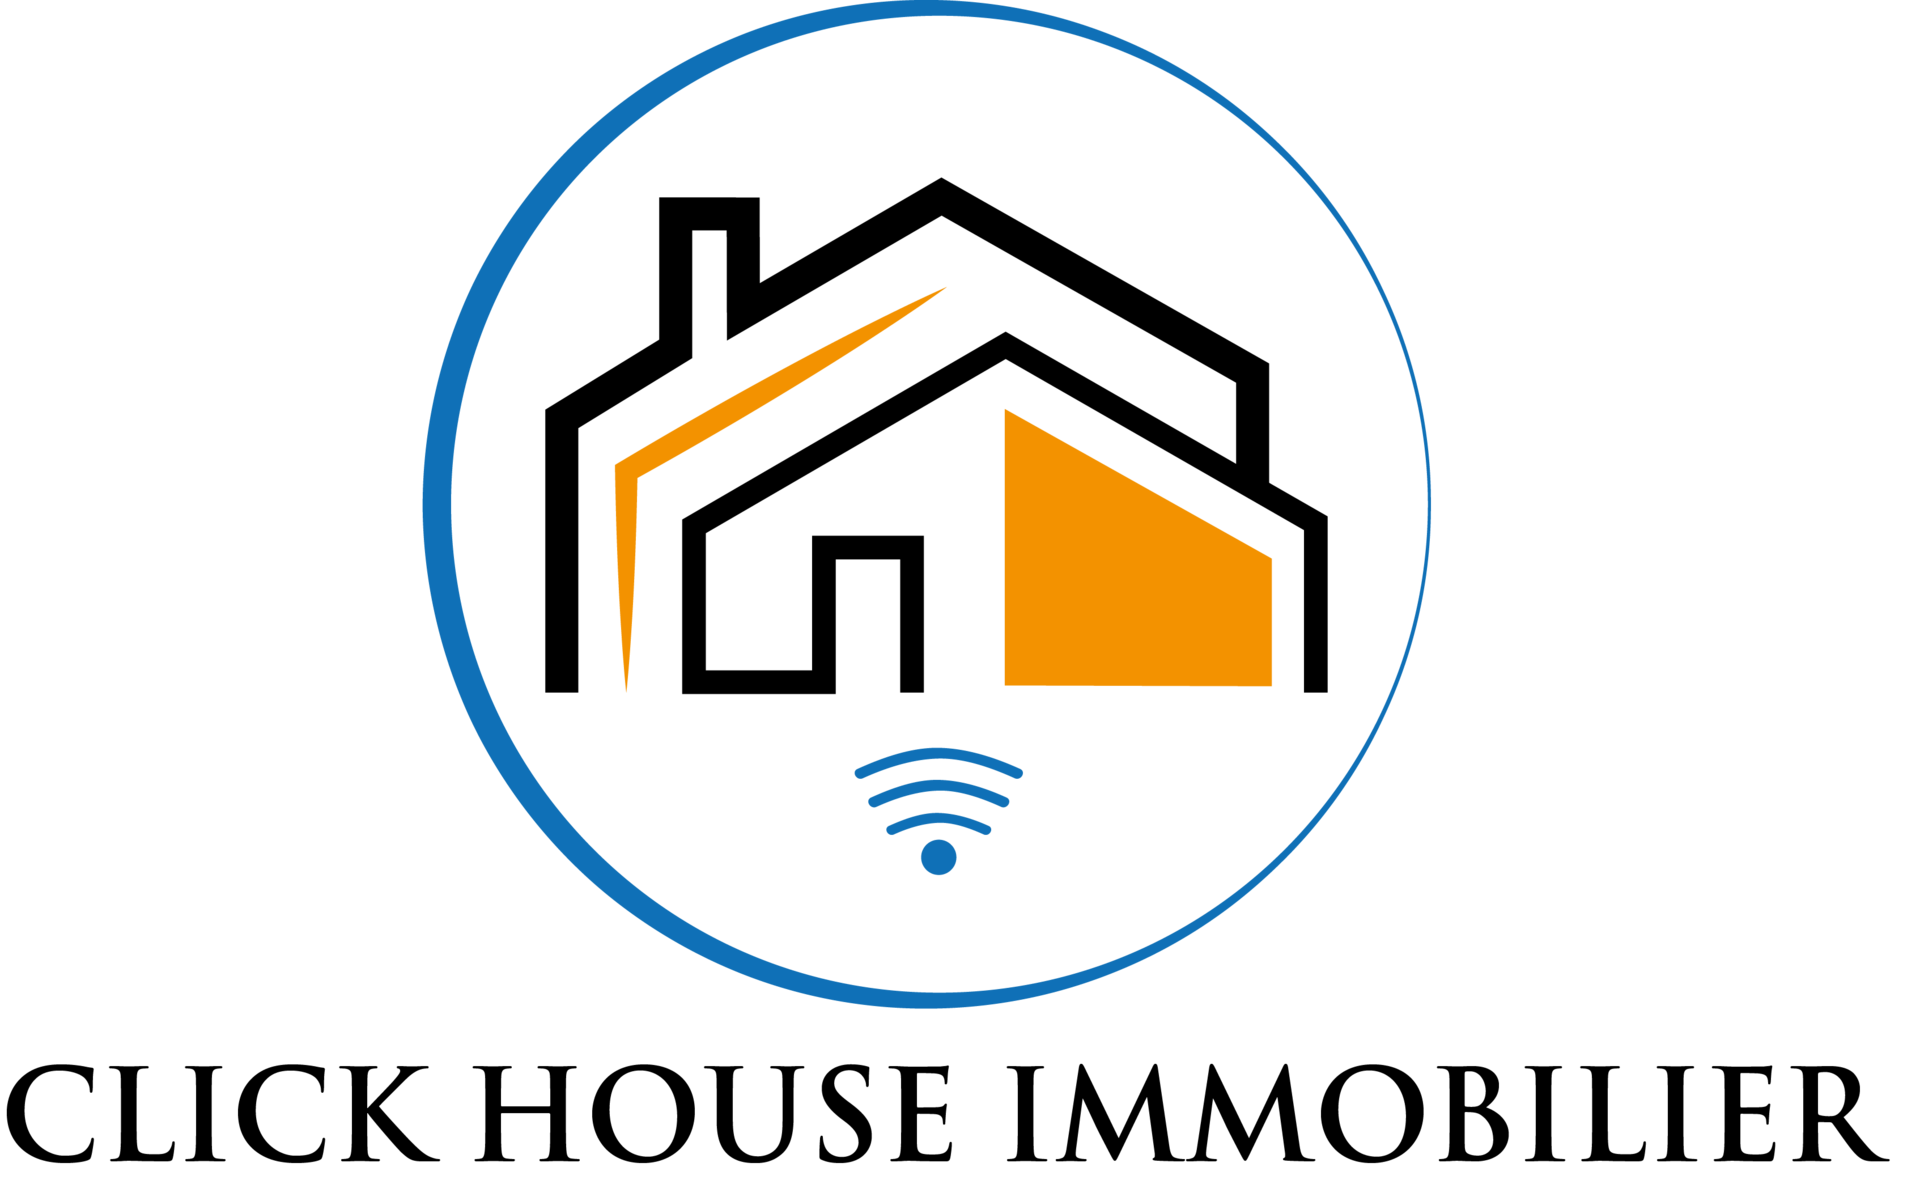 CLICK HOUSE IMMOBILIER